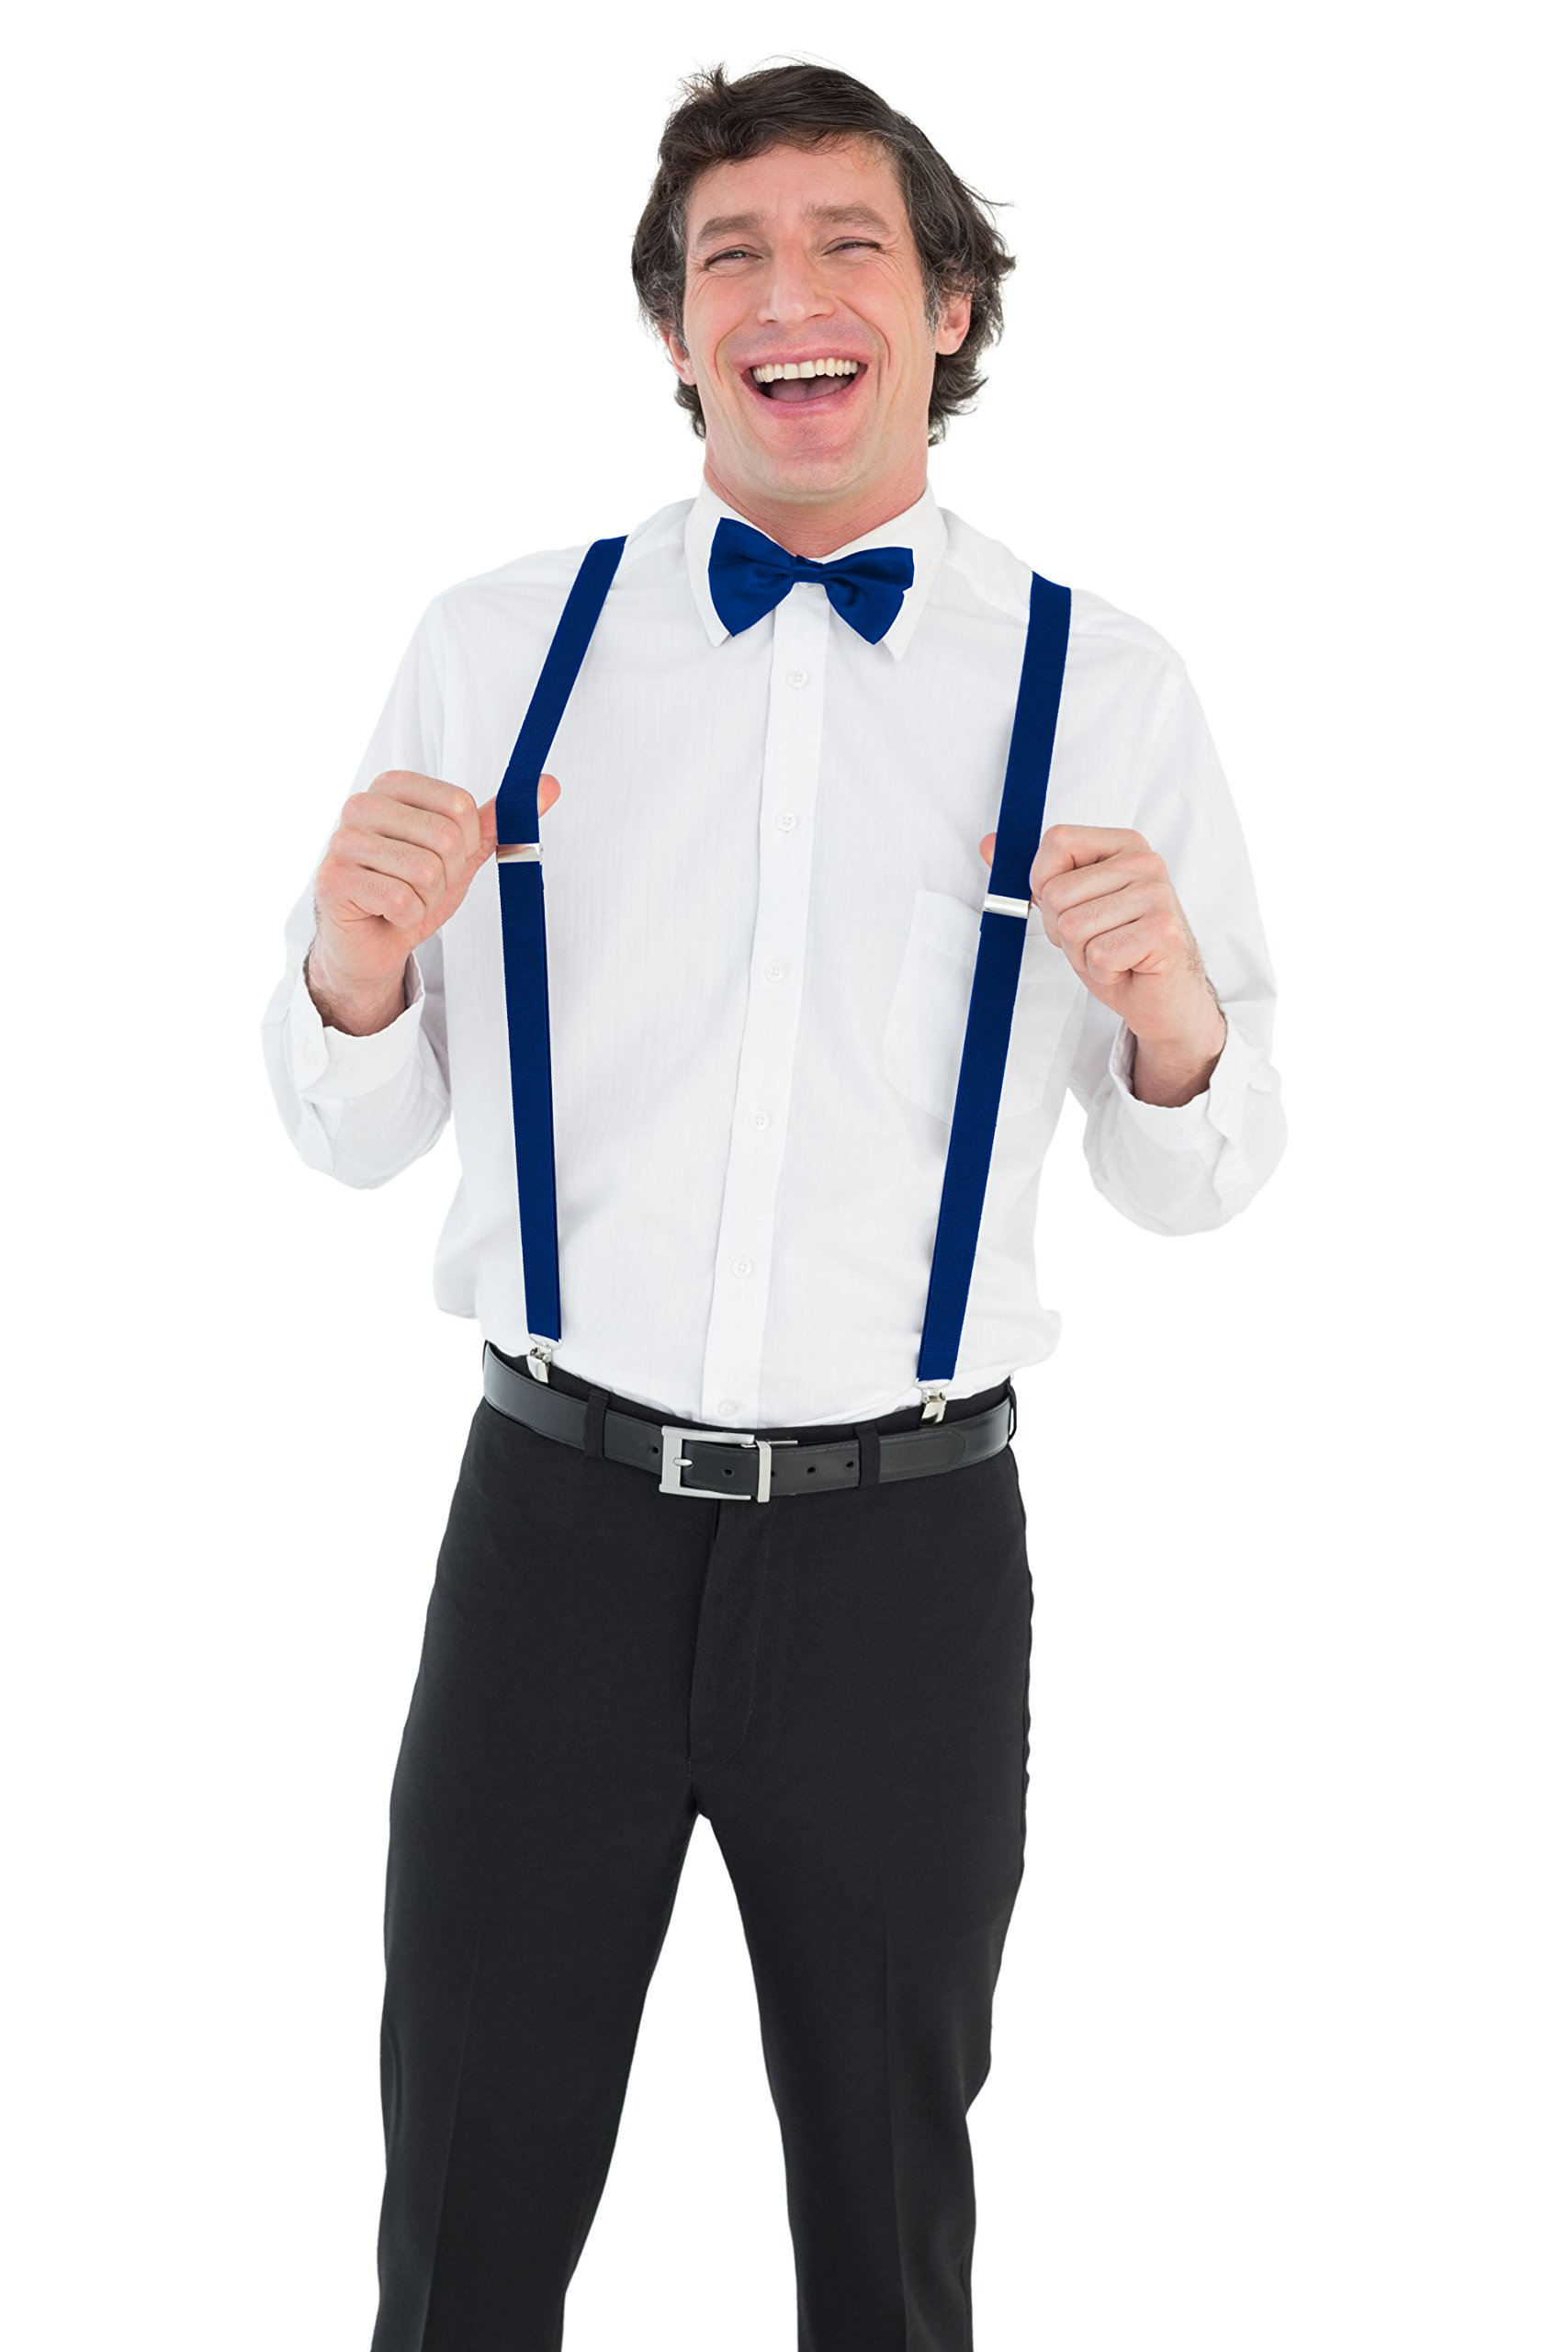 Y-Back Suspenders and Bow Tie Matching Set, Pre-Tied, Clip Design, Elastic, Adjustable Straps, Classic   Great for Weddings,Parties,Graduations, Theme Party   Nice&Unique Gifts for Men (Royal Blue) by Coster (Image #3)